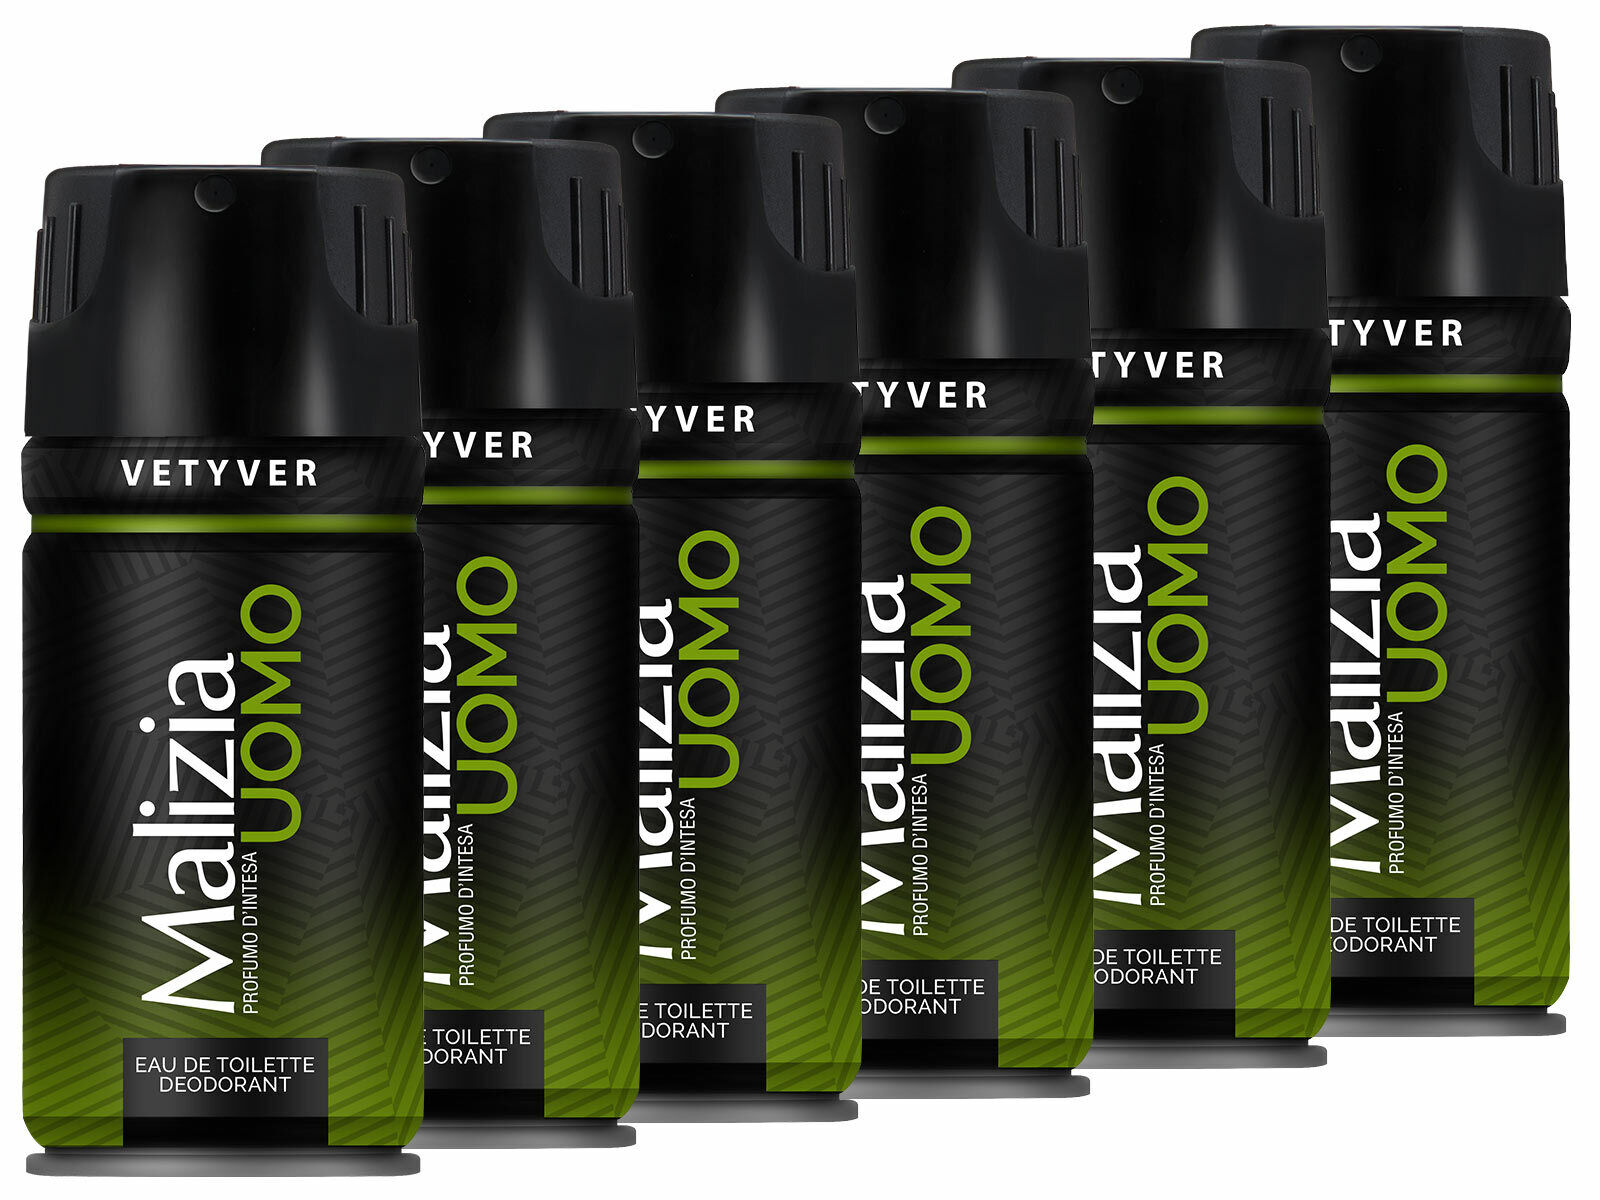 Malizia Uomo Deo 6x 150 ml Vetyver the green Deodorant from italy